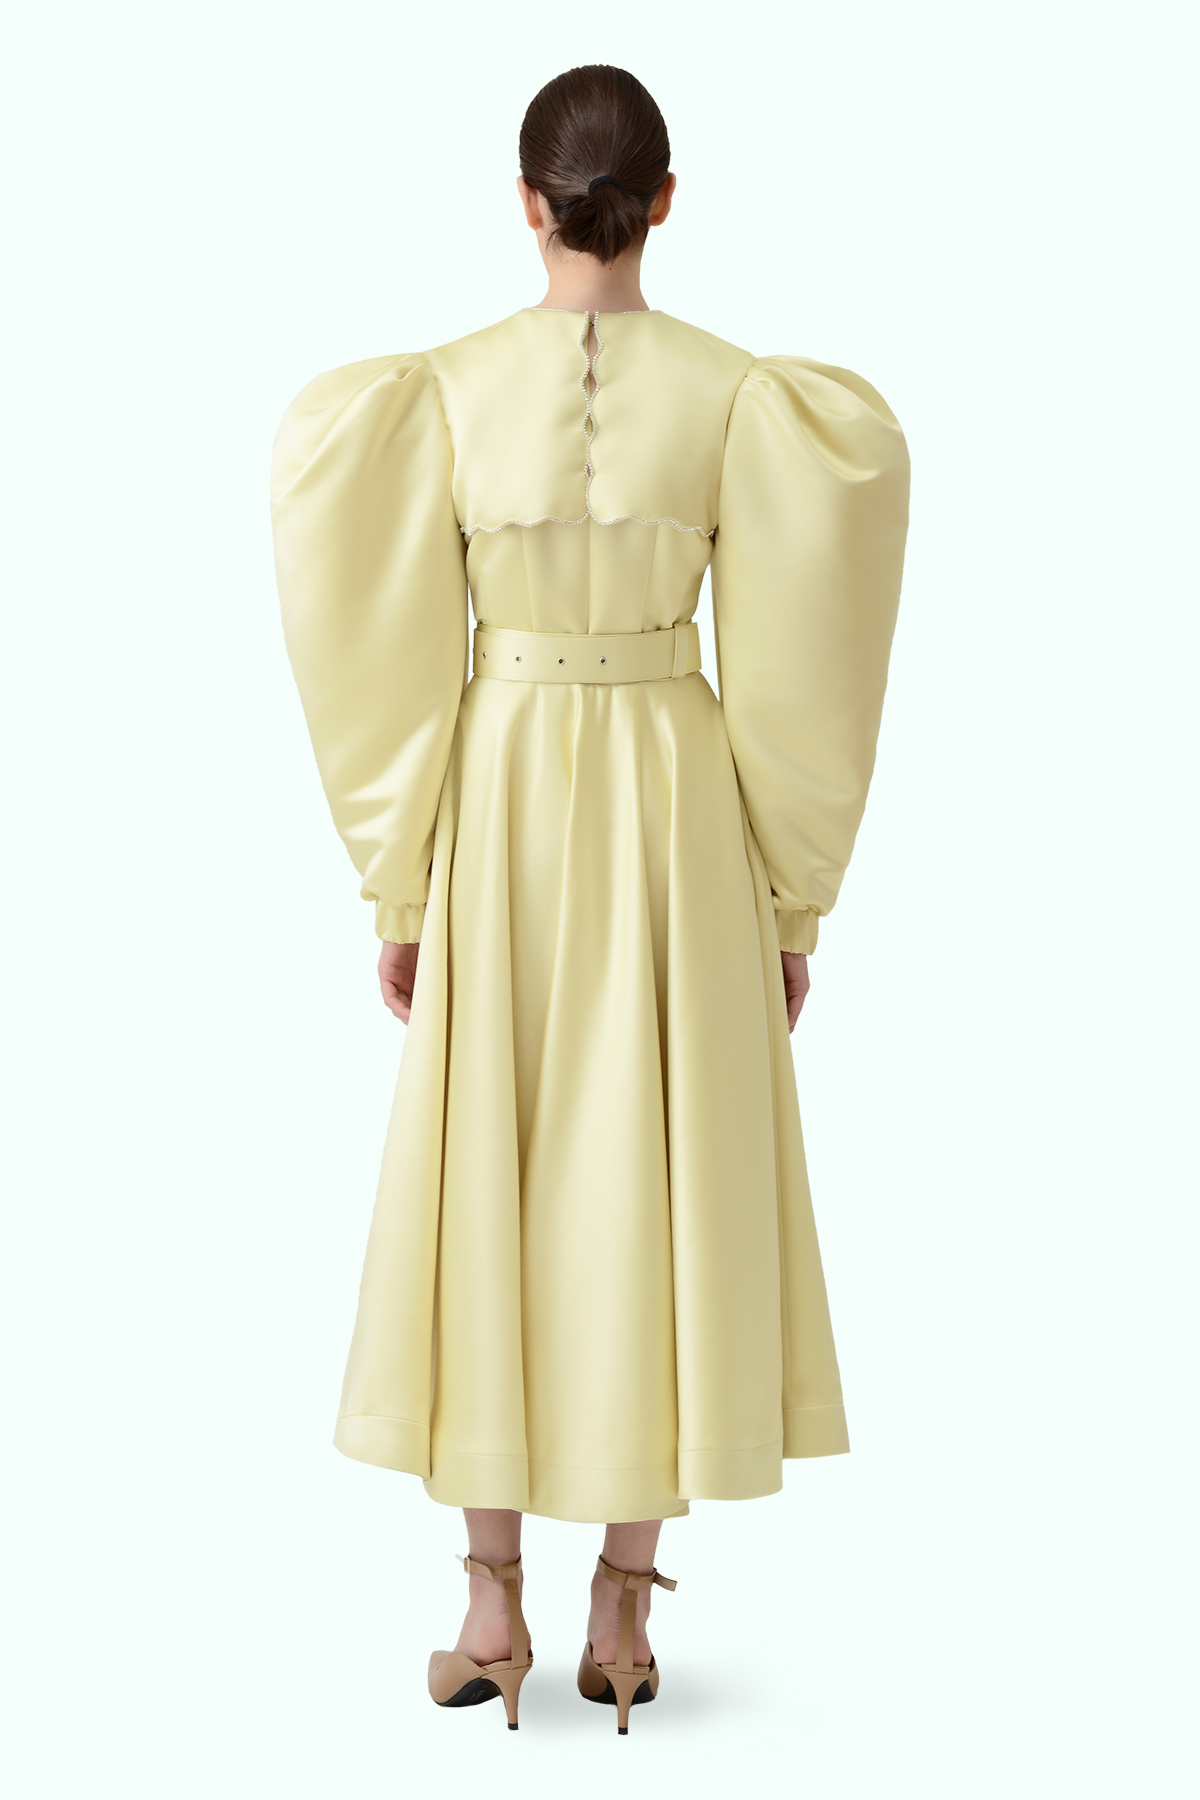 Puff sleeve yellow dress with puritan collar and embroidered crystals 3